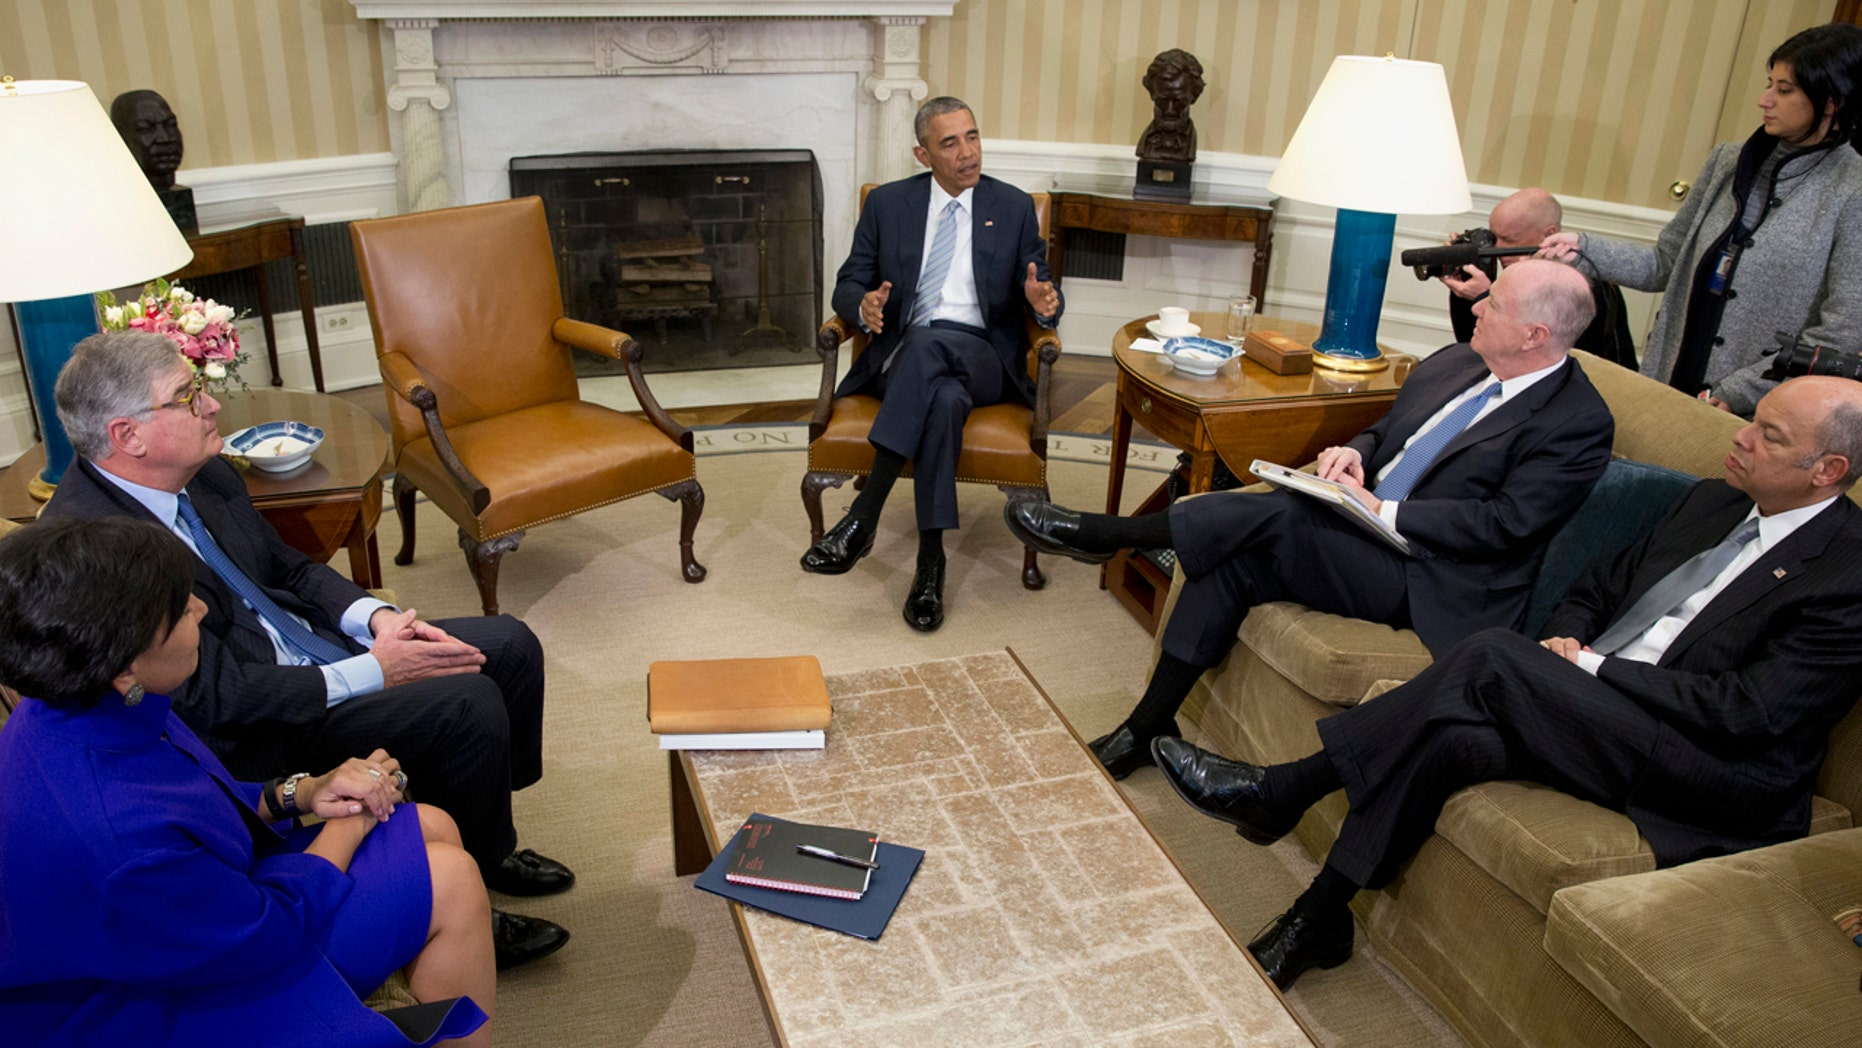 FILE - In this Feb. 17, 2016, file photo, President Barack Obama, joined by from left, Commerce Secretary Penny Pritzker, former IBM CEO Sam Palmisano, former National Security Adviser Tom Donilon, and Homeland Security Secretary Jeh Johnson, talks to media in the Oval Office of the White House, in Washington.